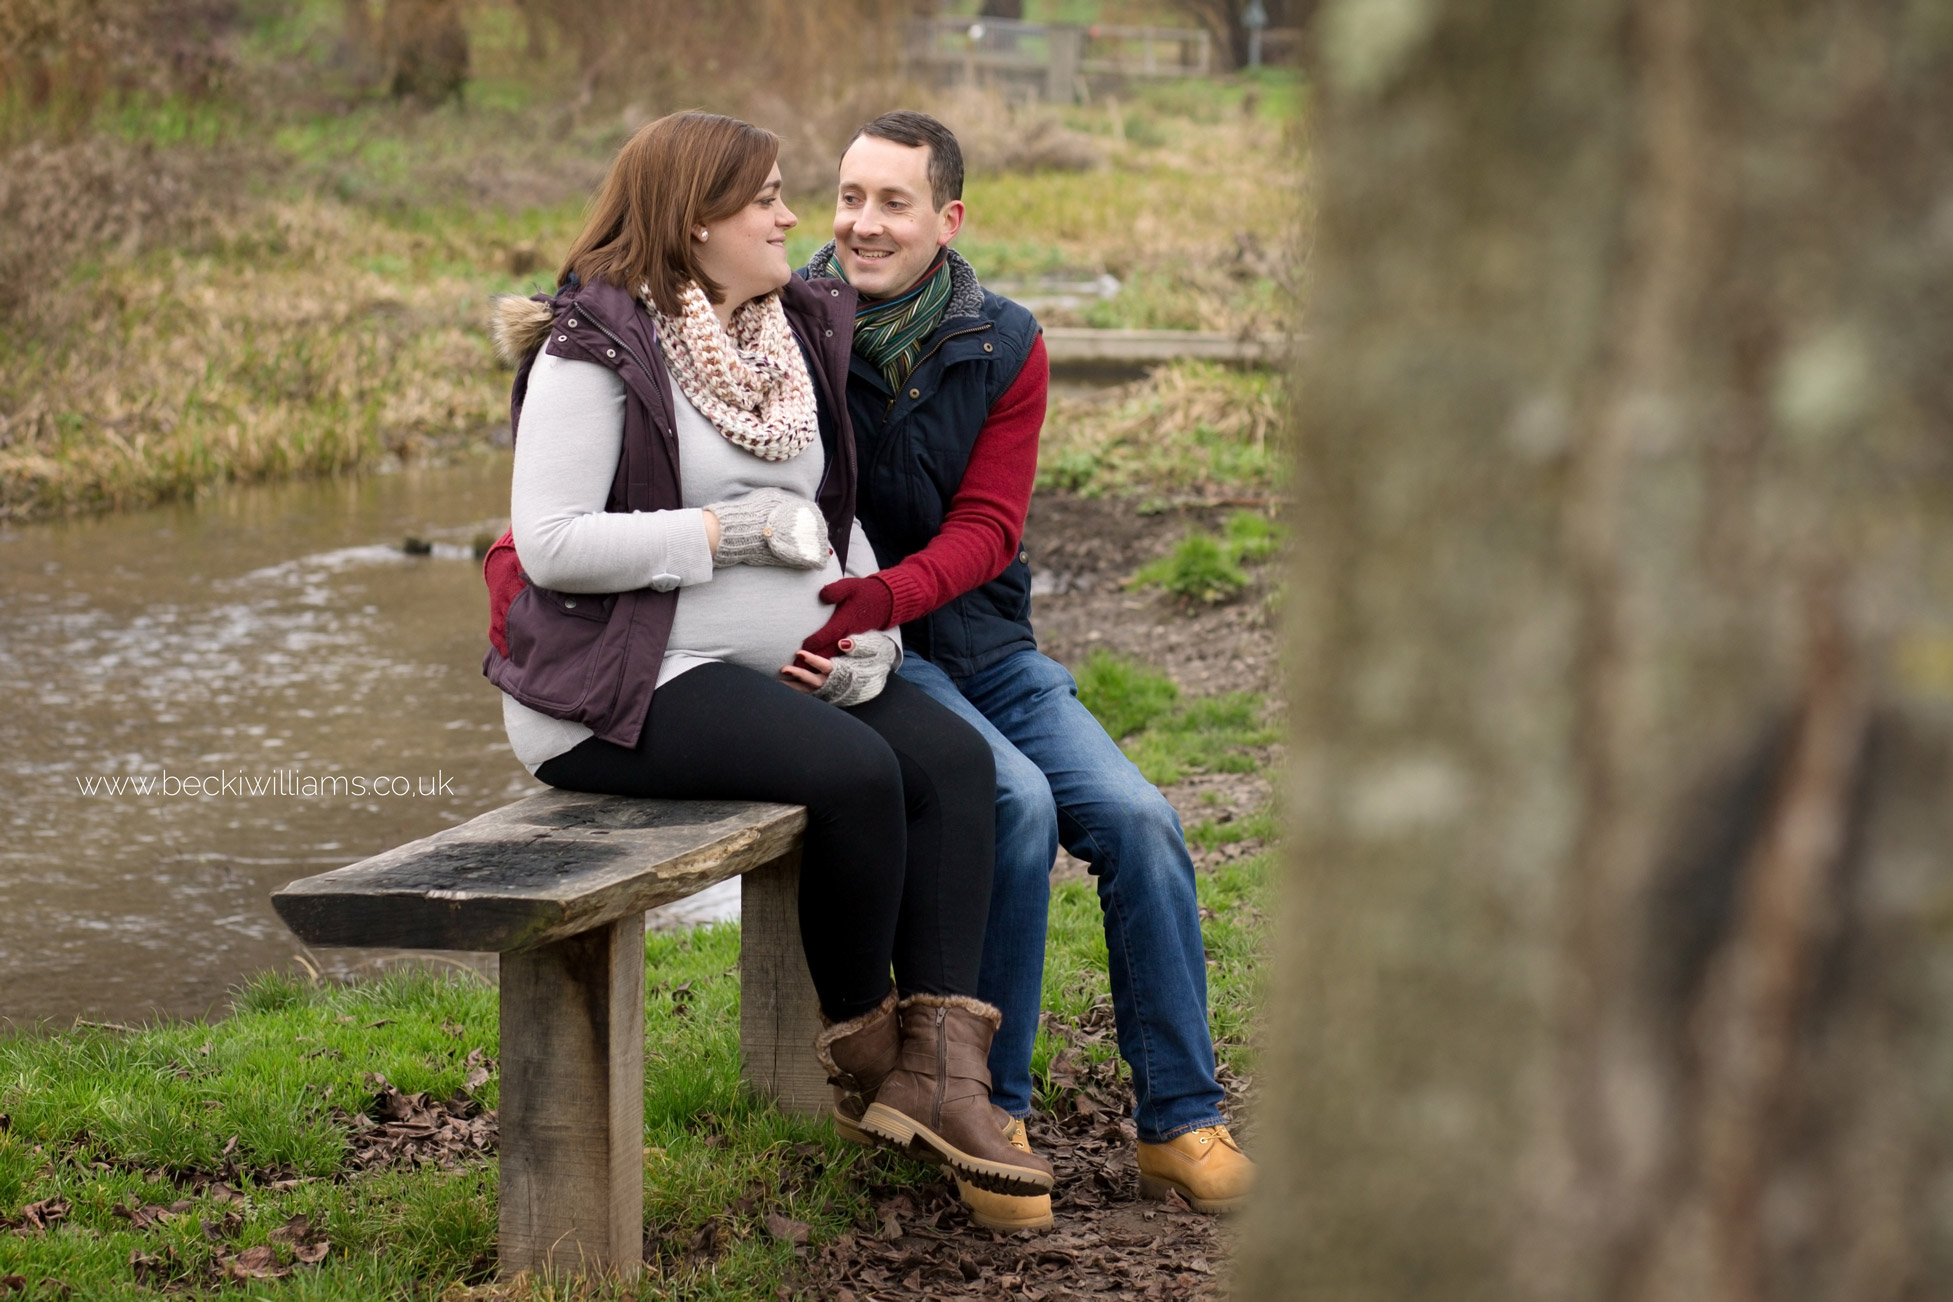 maternity-photo-shoot-hemel-hempstead-gadebridge-park-love-bump.jpg